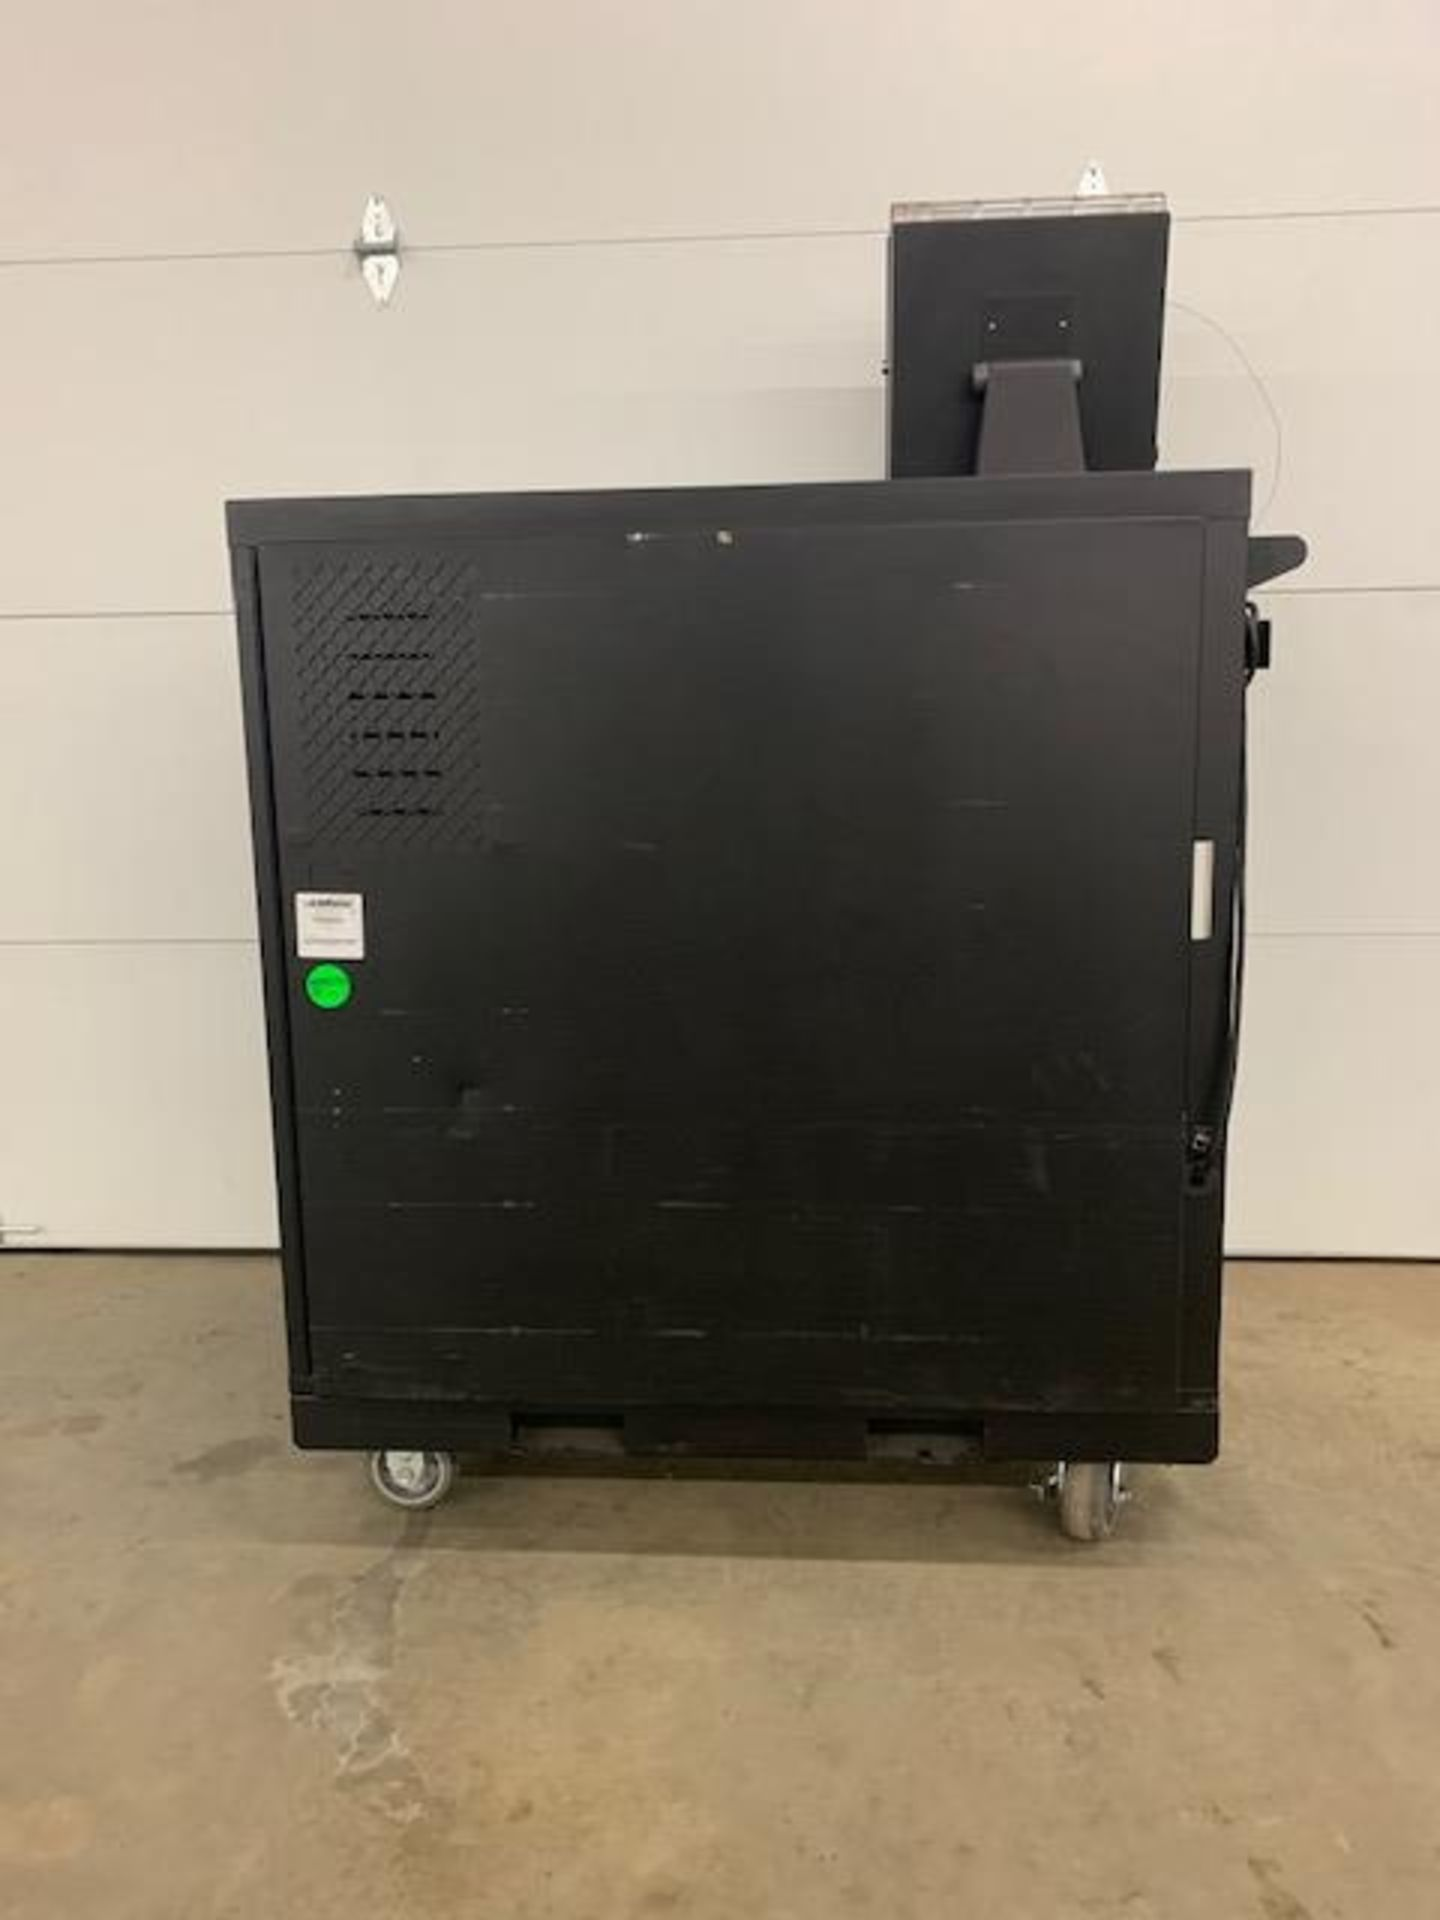 Cribmaster AccuDrawer - Image 8 of 10